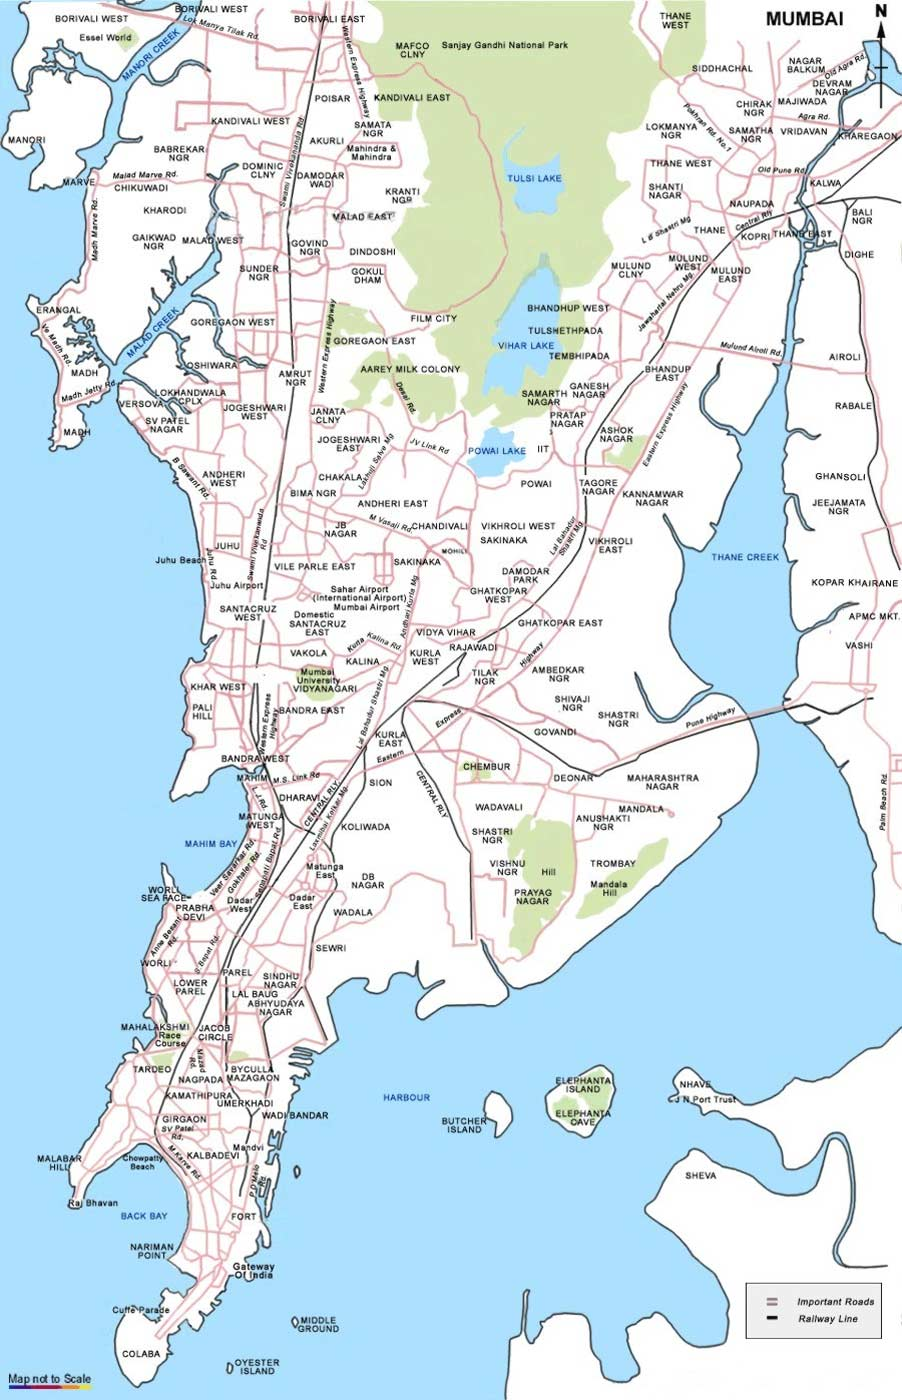 City Map of Mumbai